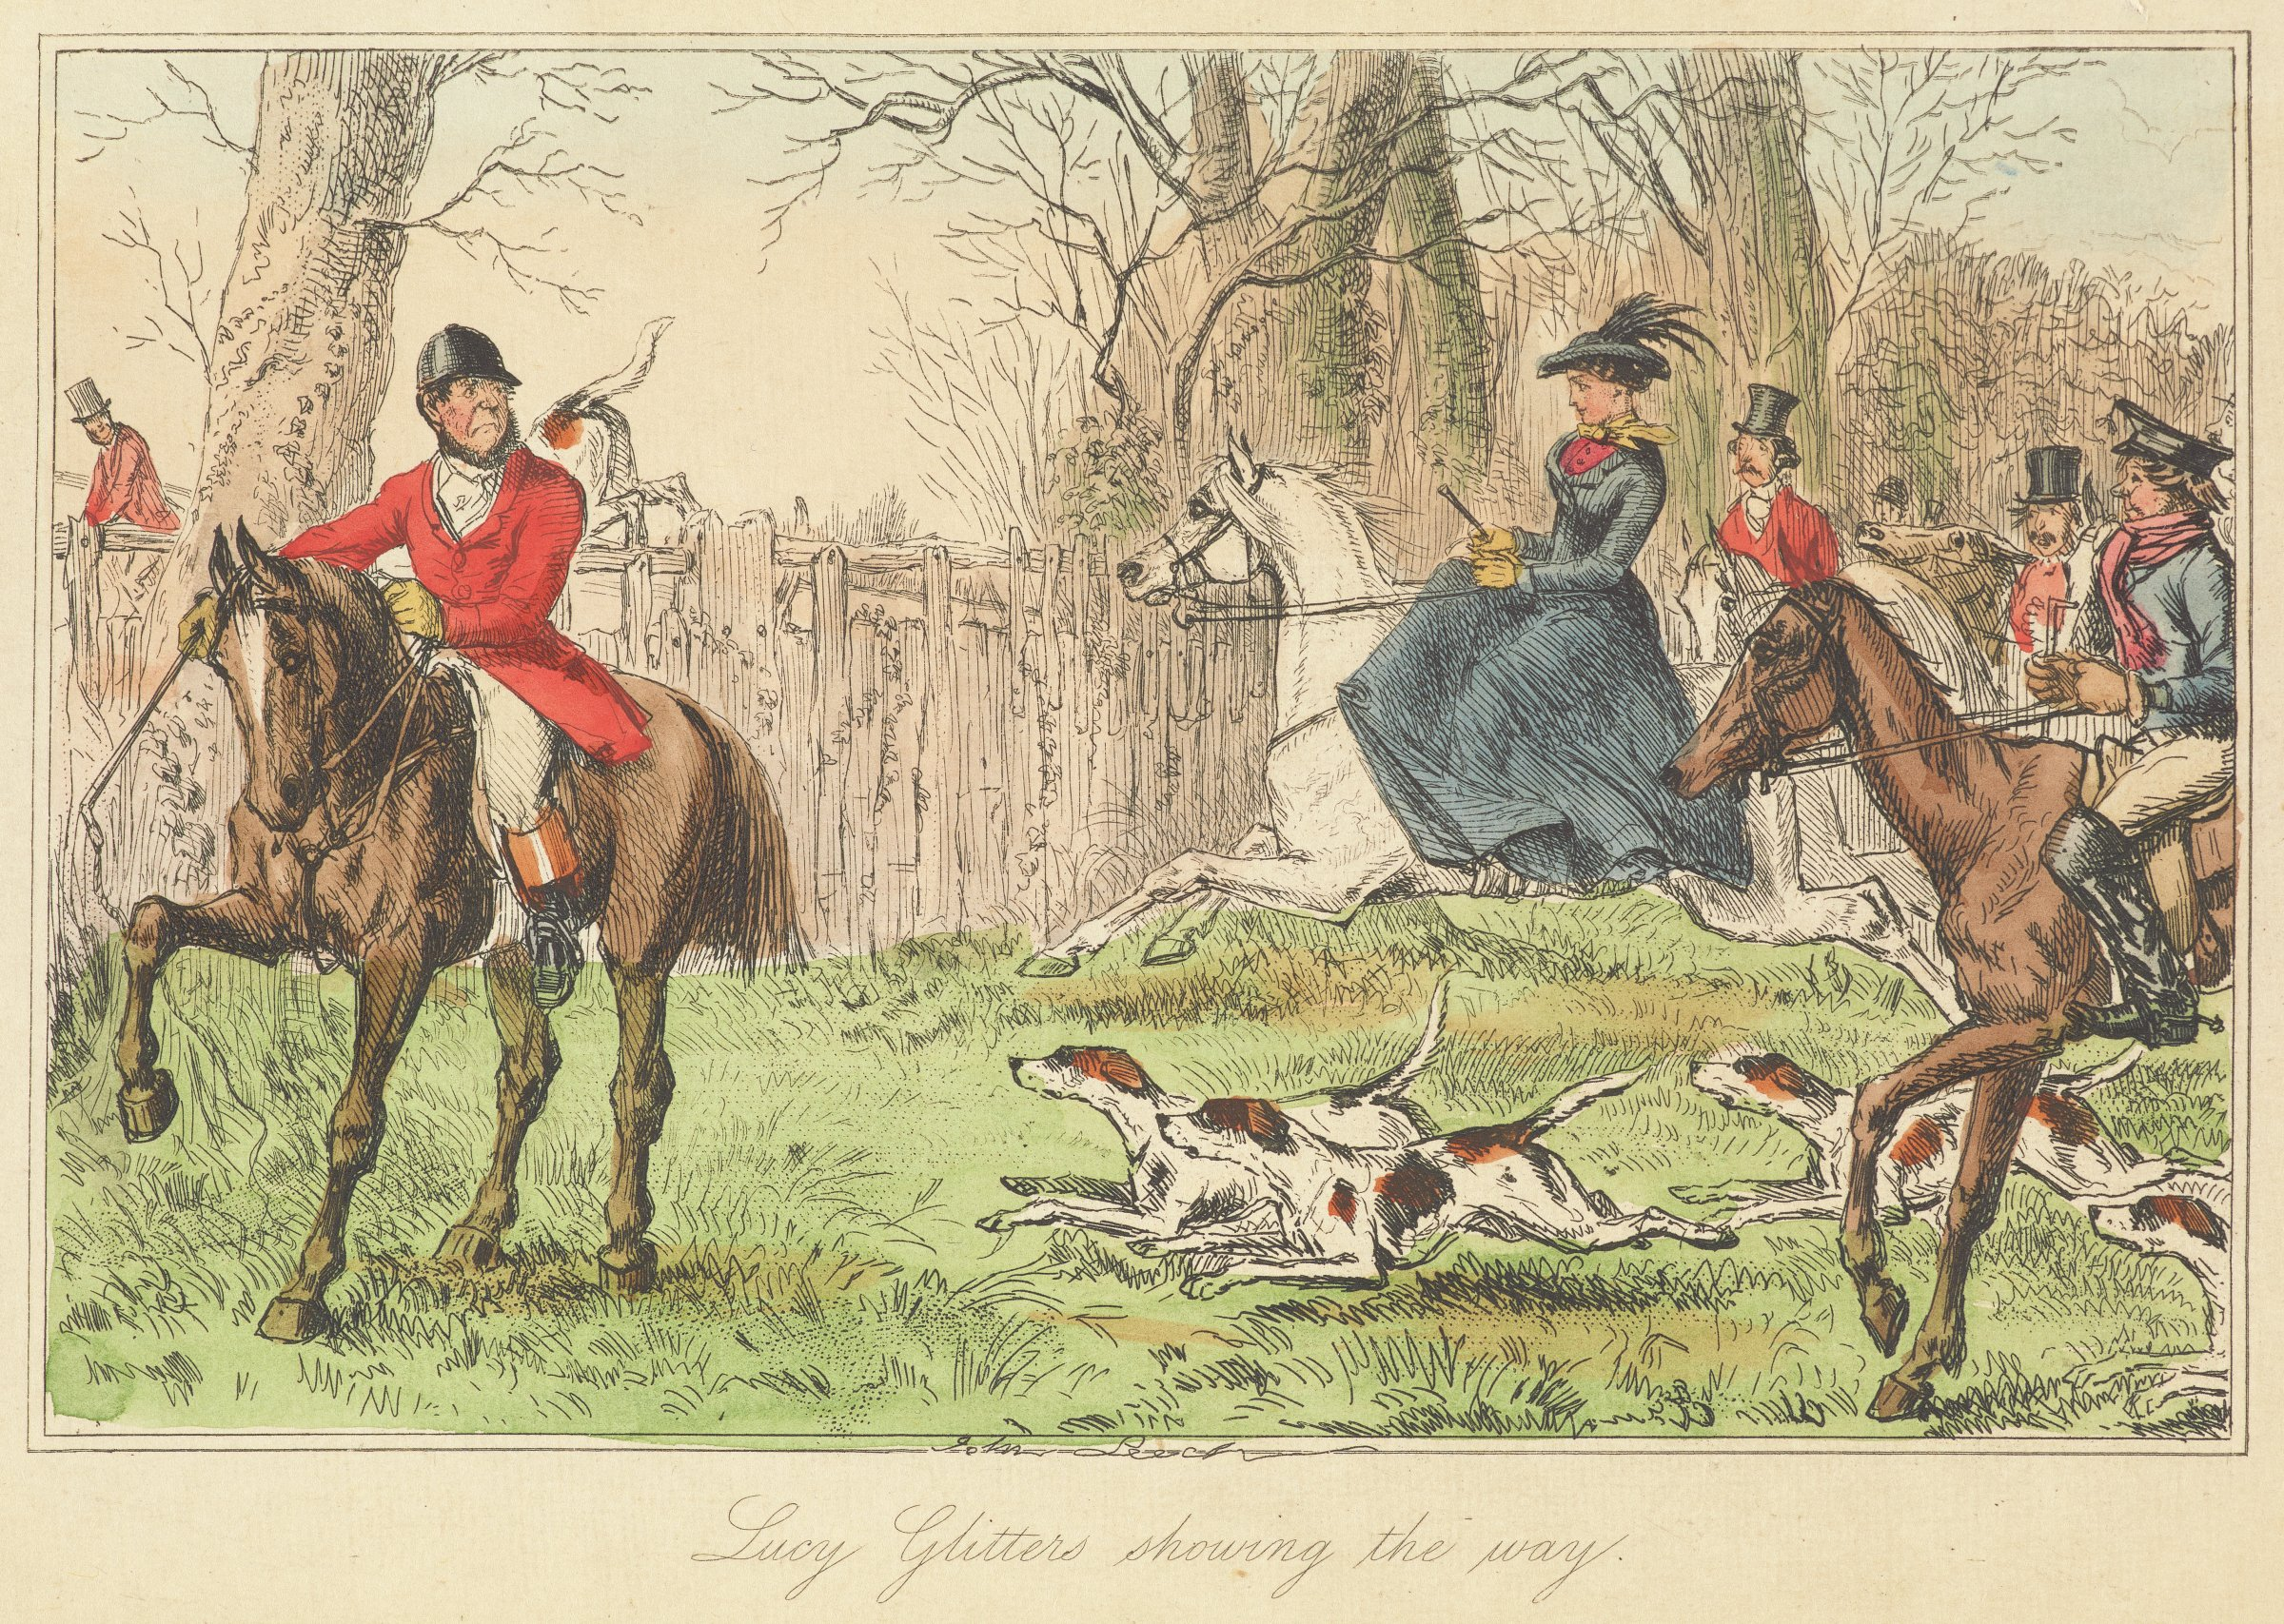 A lady riding a white horse leads a group of gentleman who are also riding horses. The group is heading towards a fence that they will jump over. A gentleman on the left looks at the scene with a disapproving grimace.